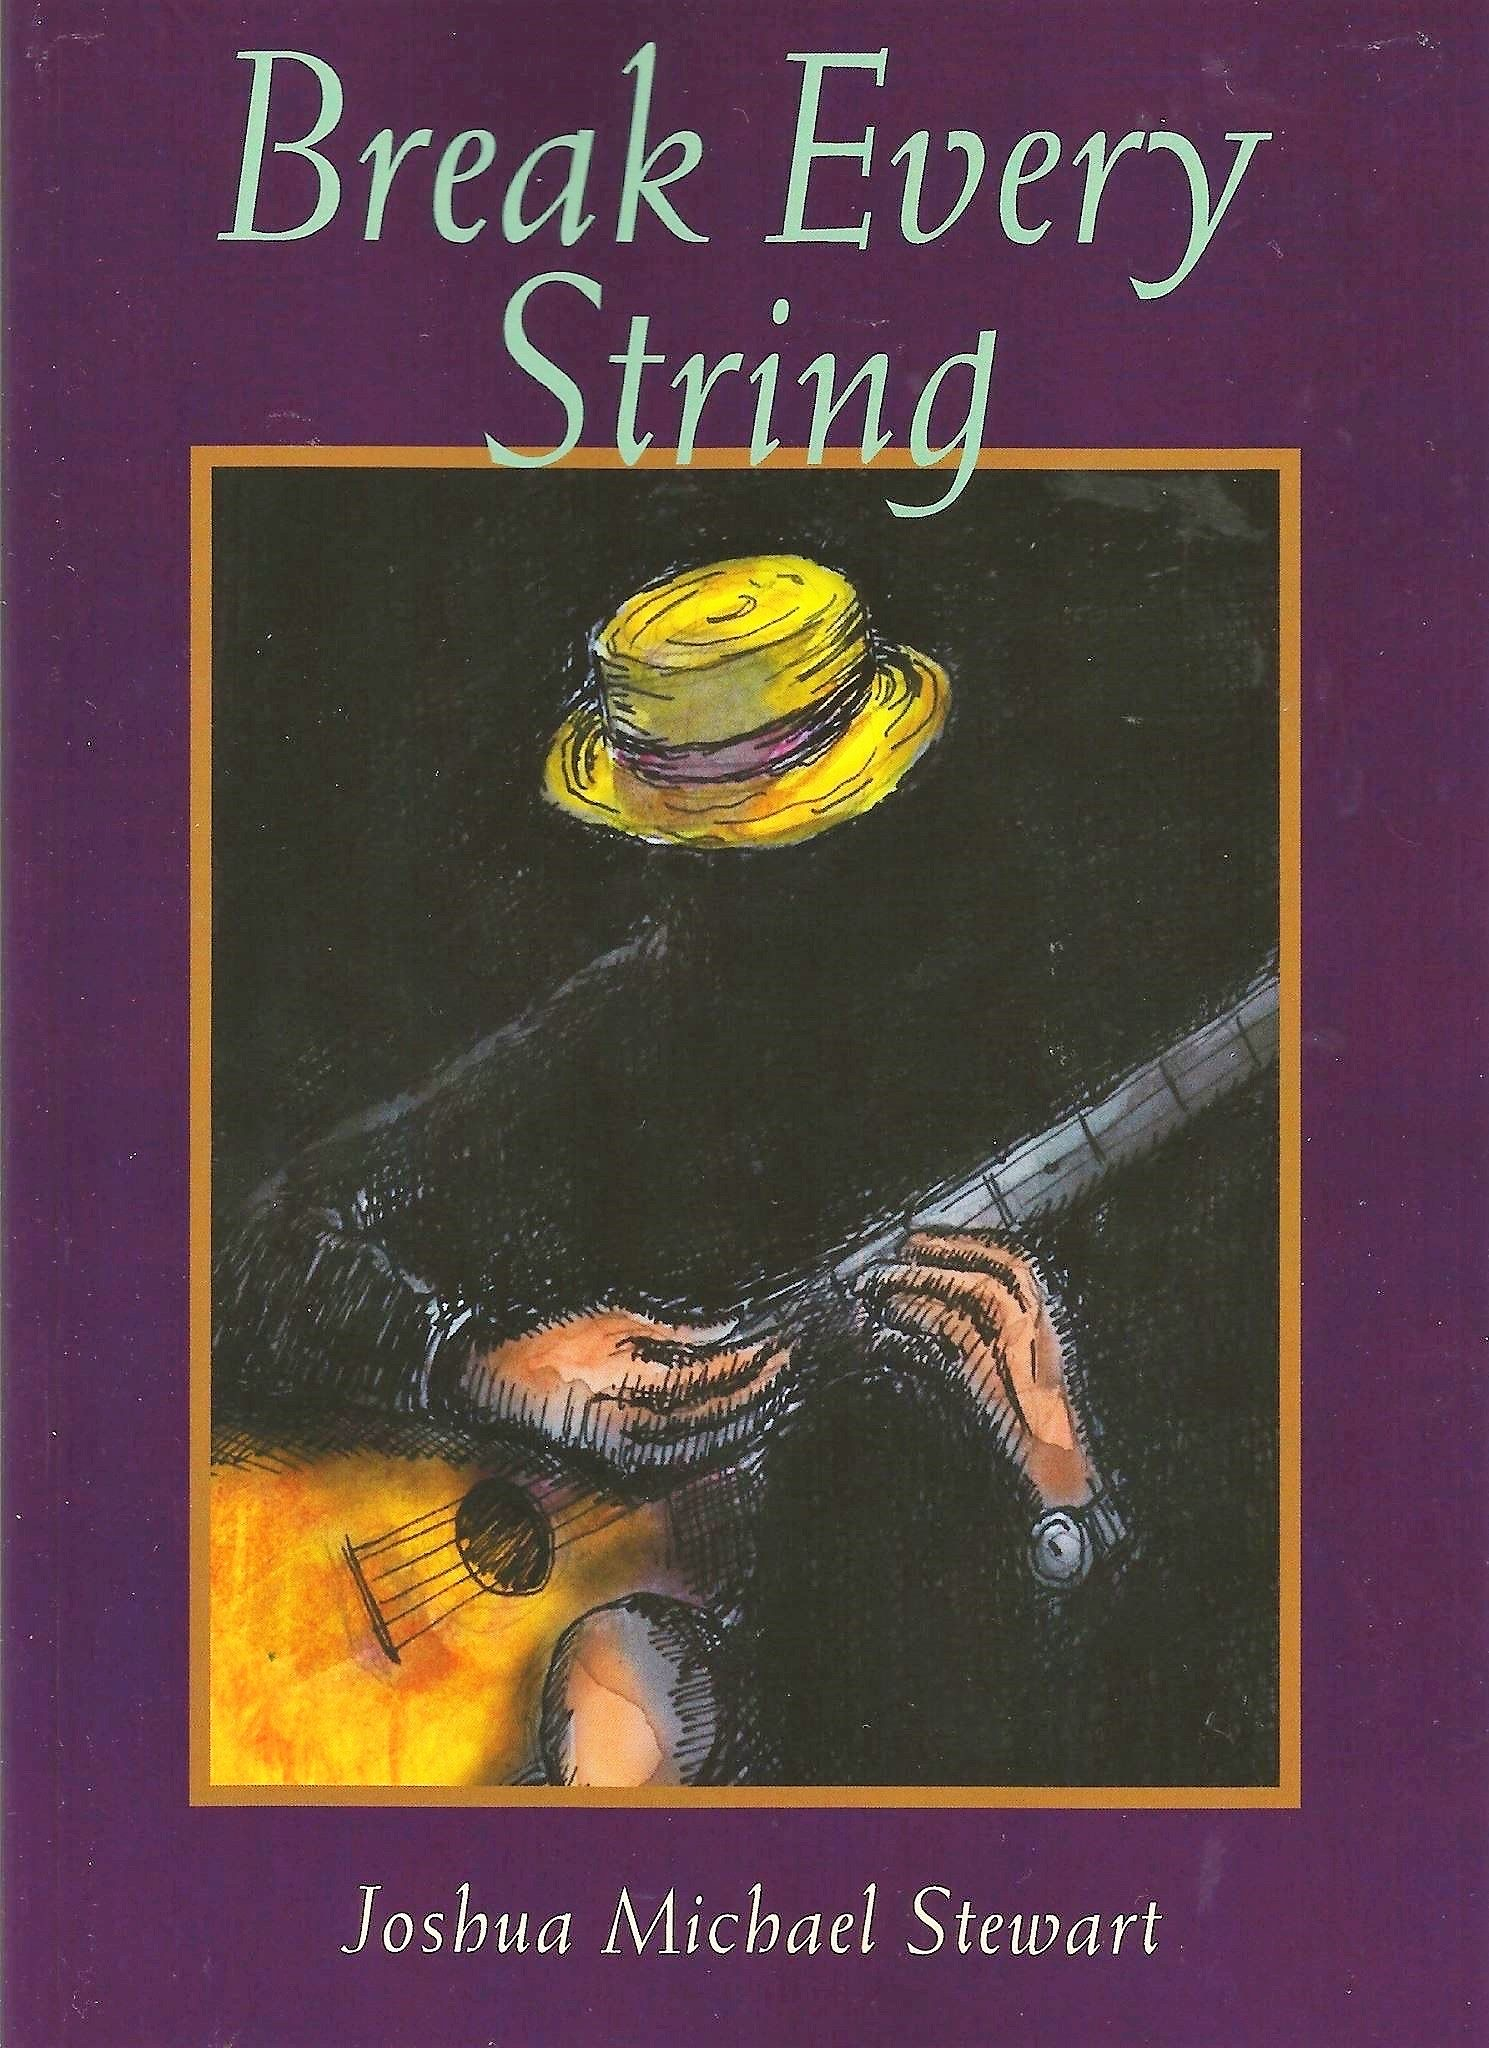 Image of Front Cover to Joshua Michael Stewart's 2016 book 'Break Every String'